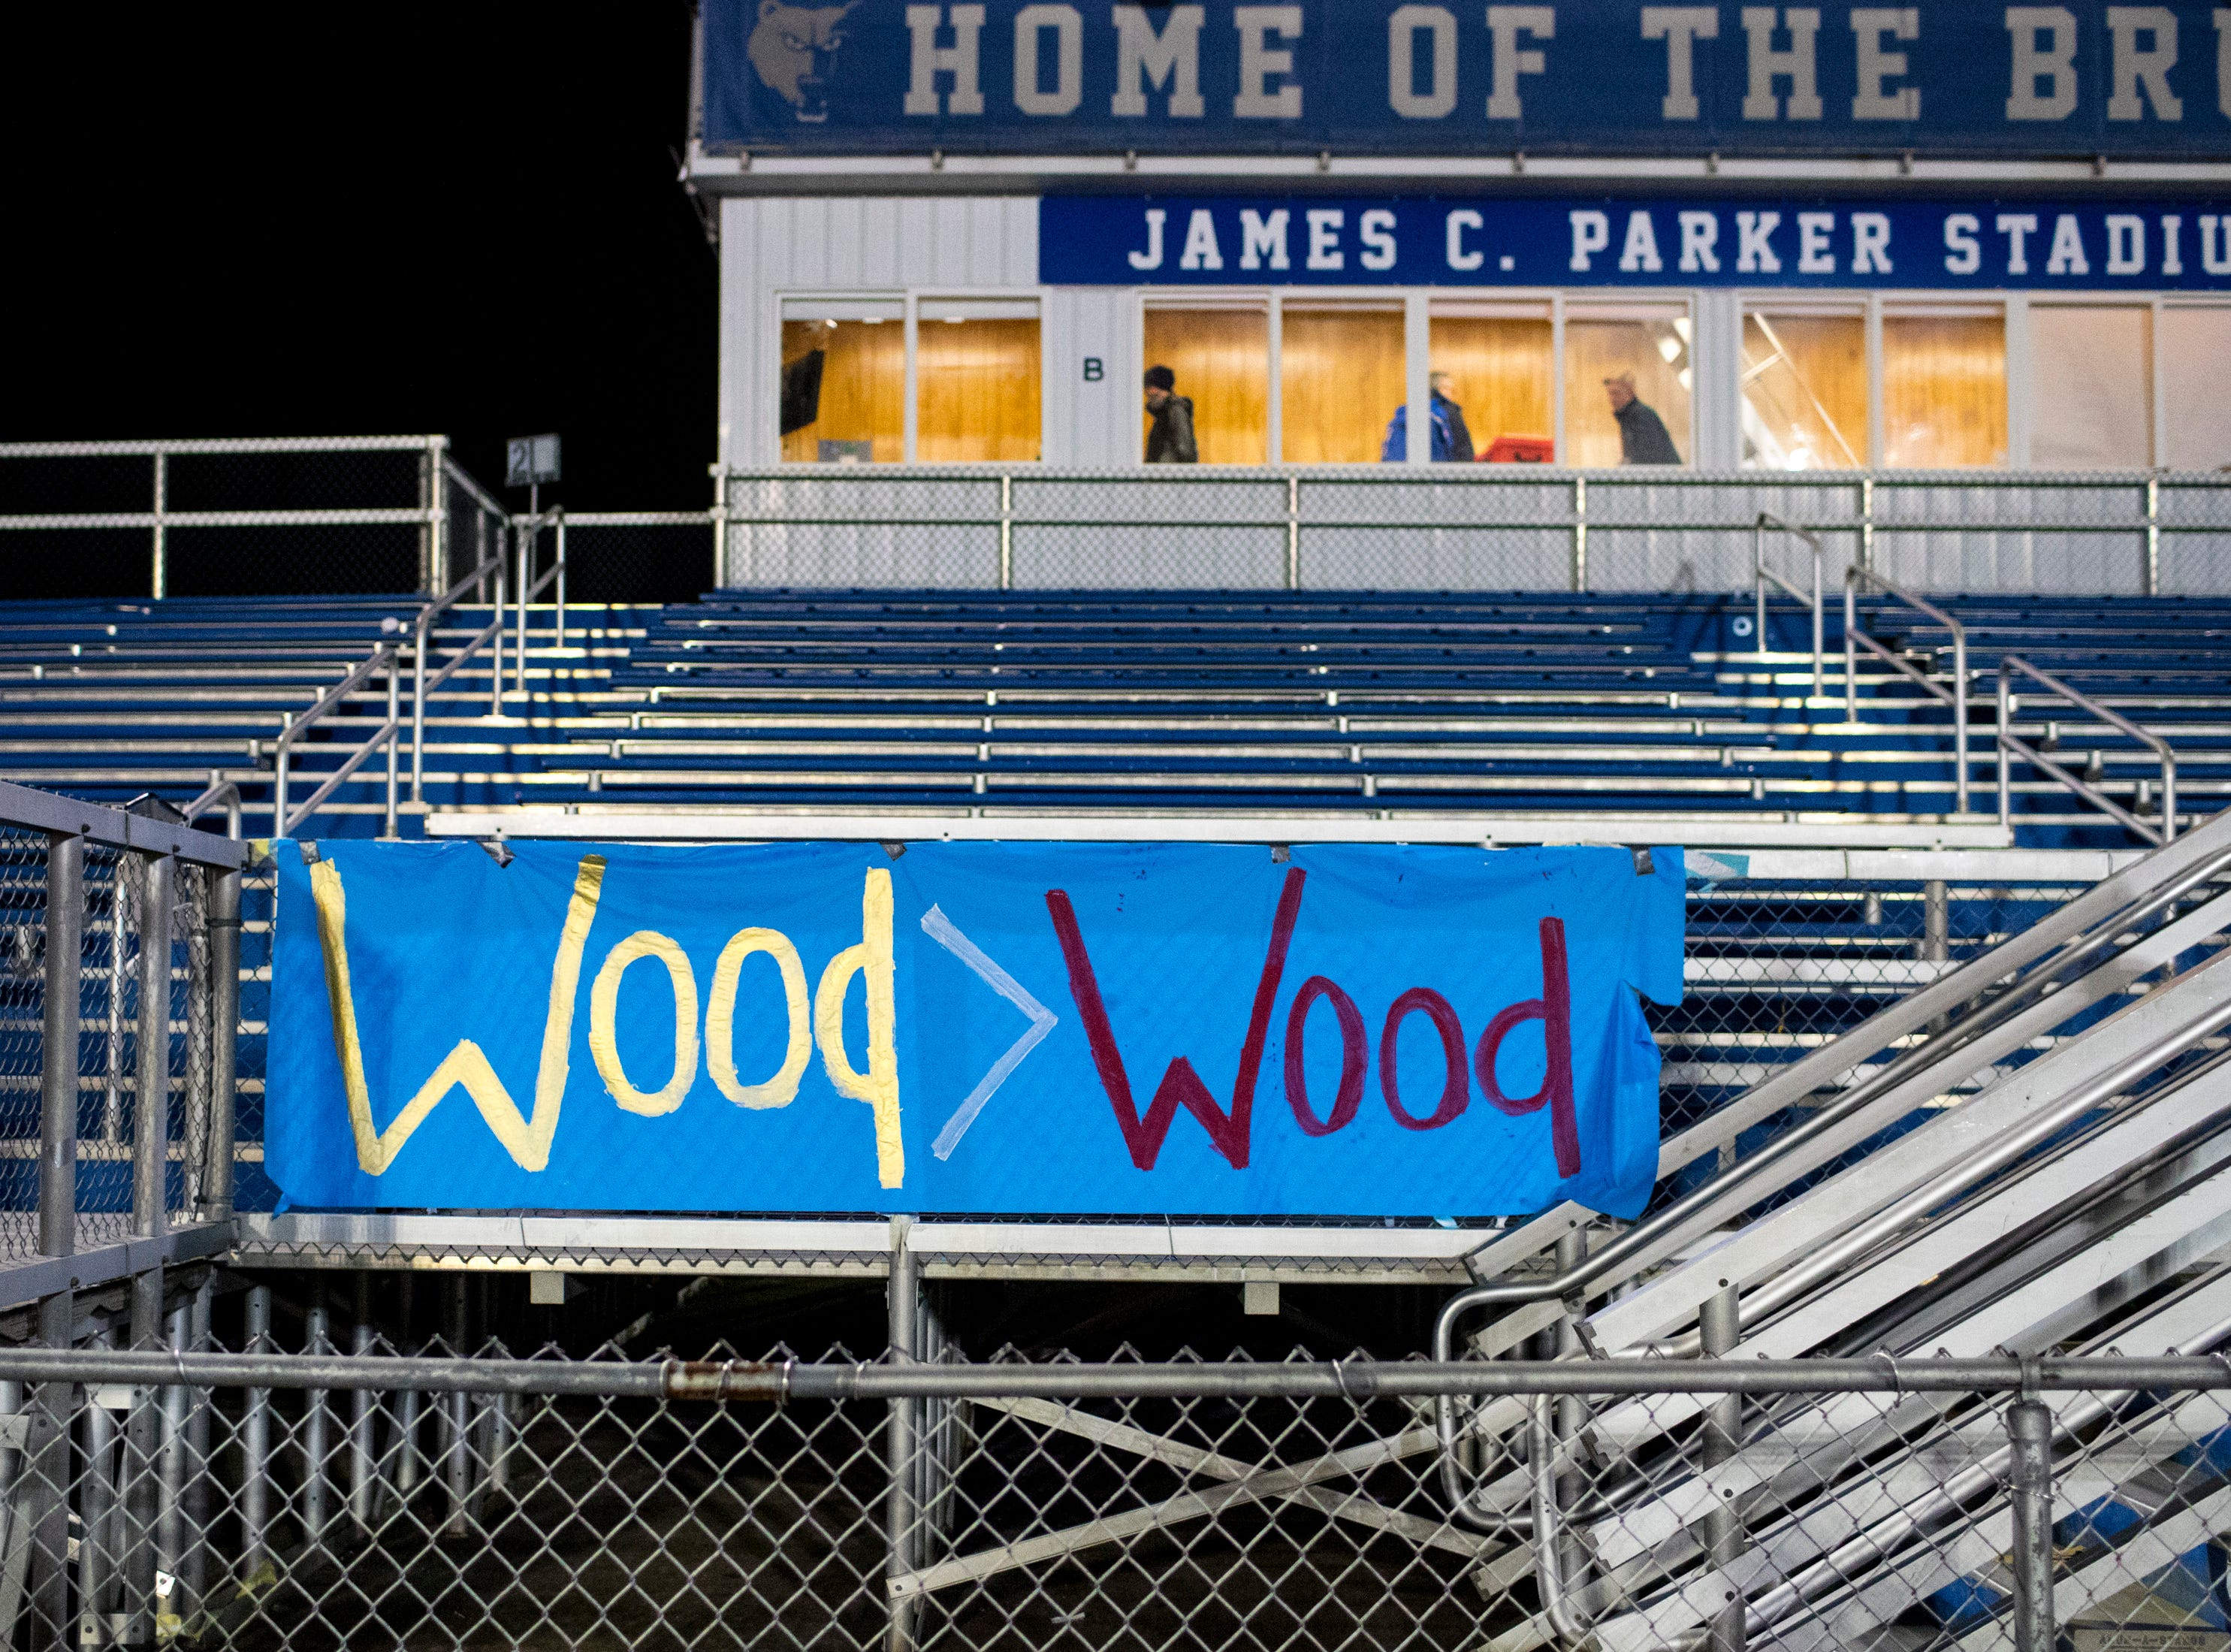 A sign is left on Brentwood's side of the stadium after Brentwood's game against Ravenwood at Brentwood High School in Brentwood on Friday, Nov. 16, 2018.